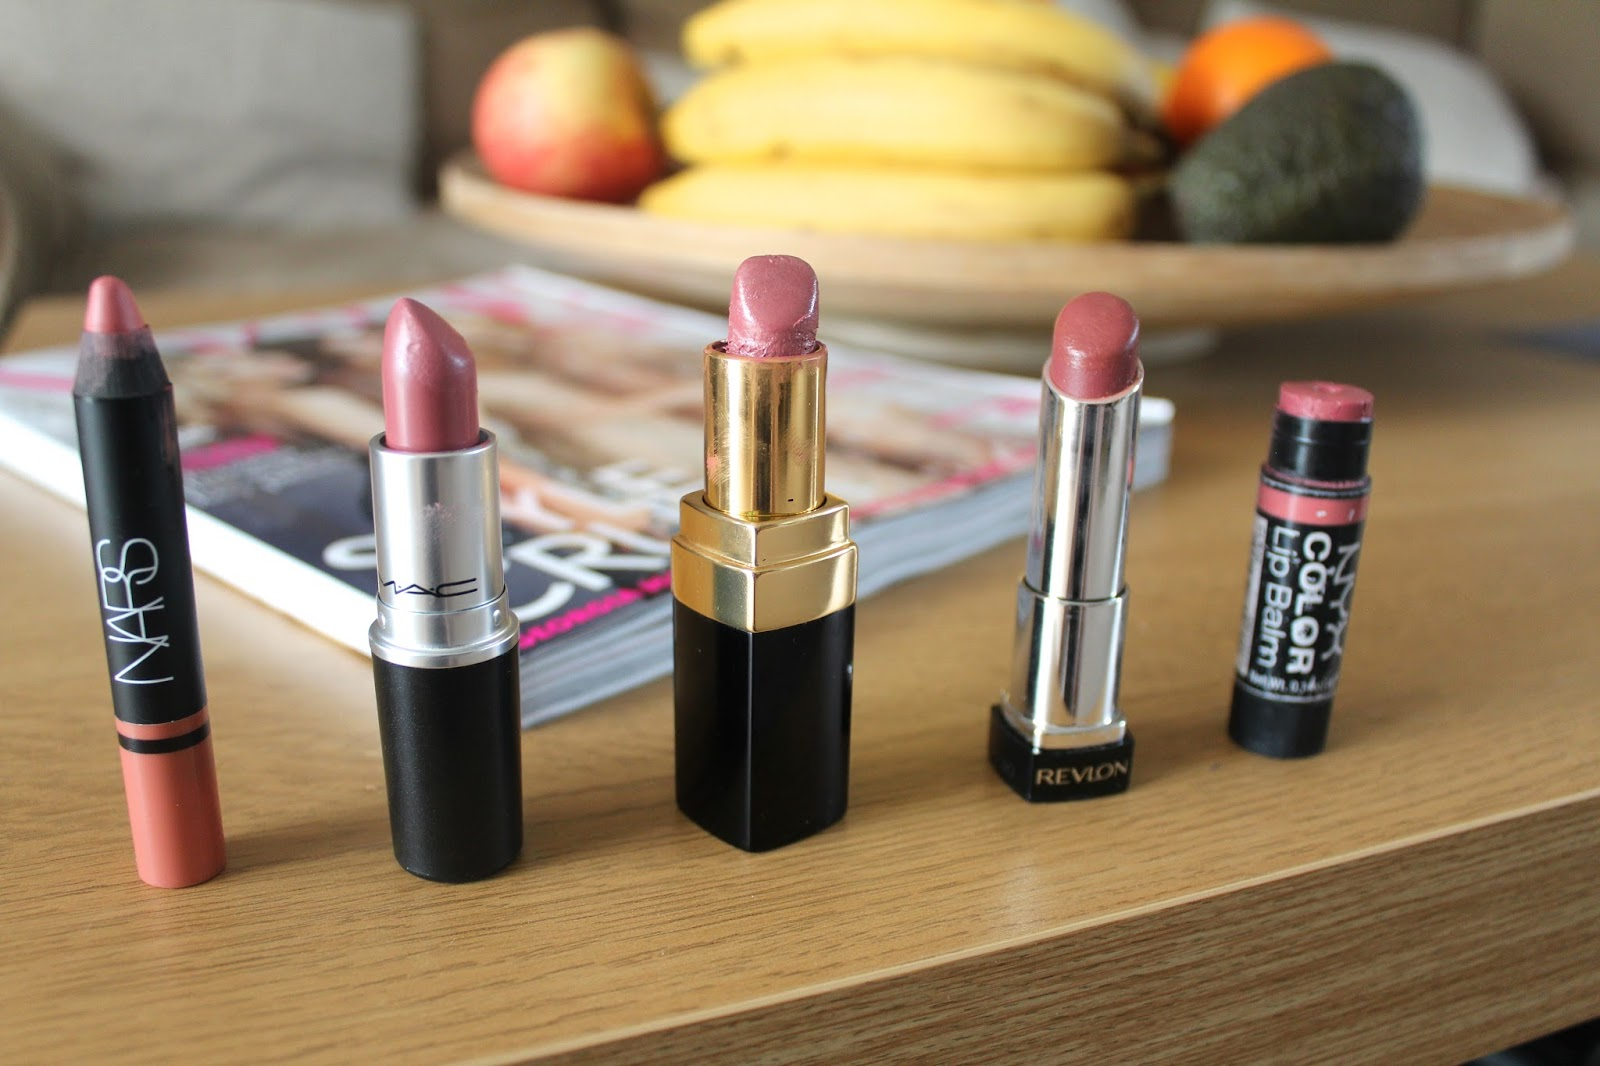 bblogger bbloggers beauty lipsticks nudes nars satin lip pencil descanso mac satin brave chanel coco rouge cecile revlon lip butter pink truffle nyx color lip balm tack vogue recommendations tutorial top 5 instagram swatch